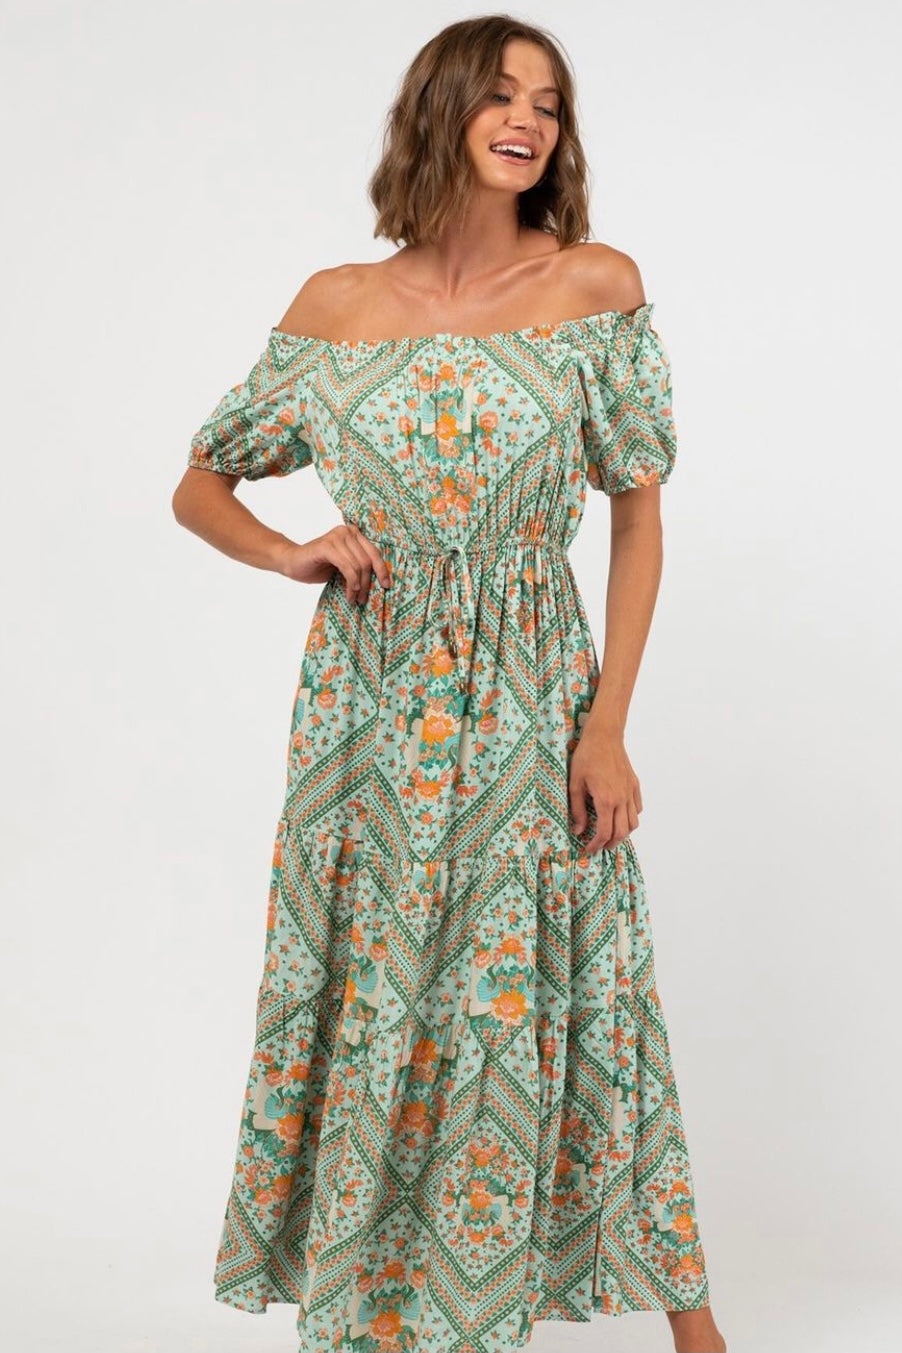 Bird of Paradise Maxi Dress - PHE81971